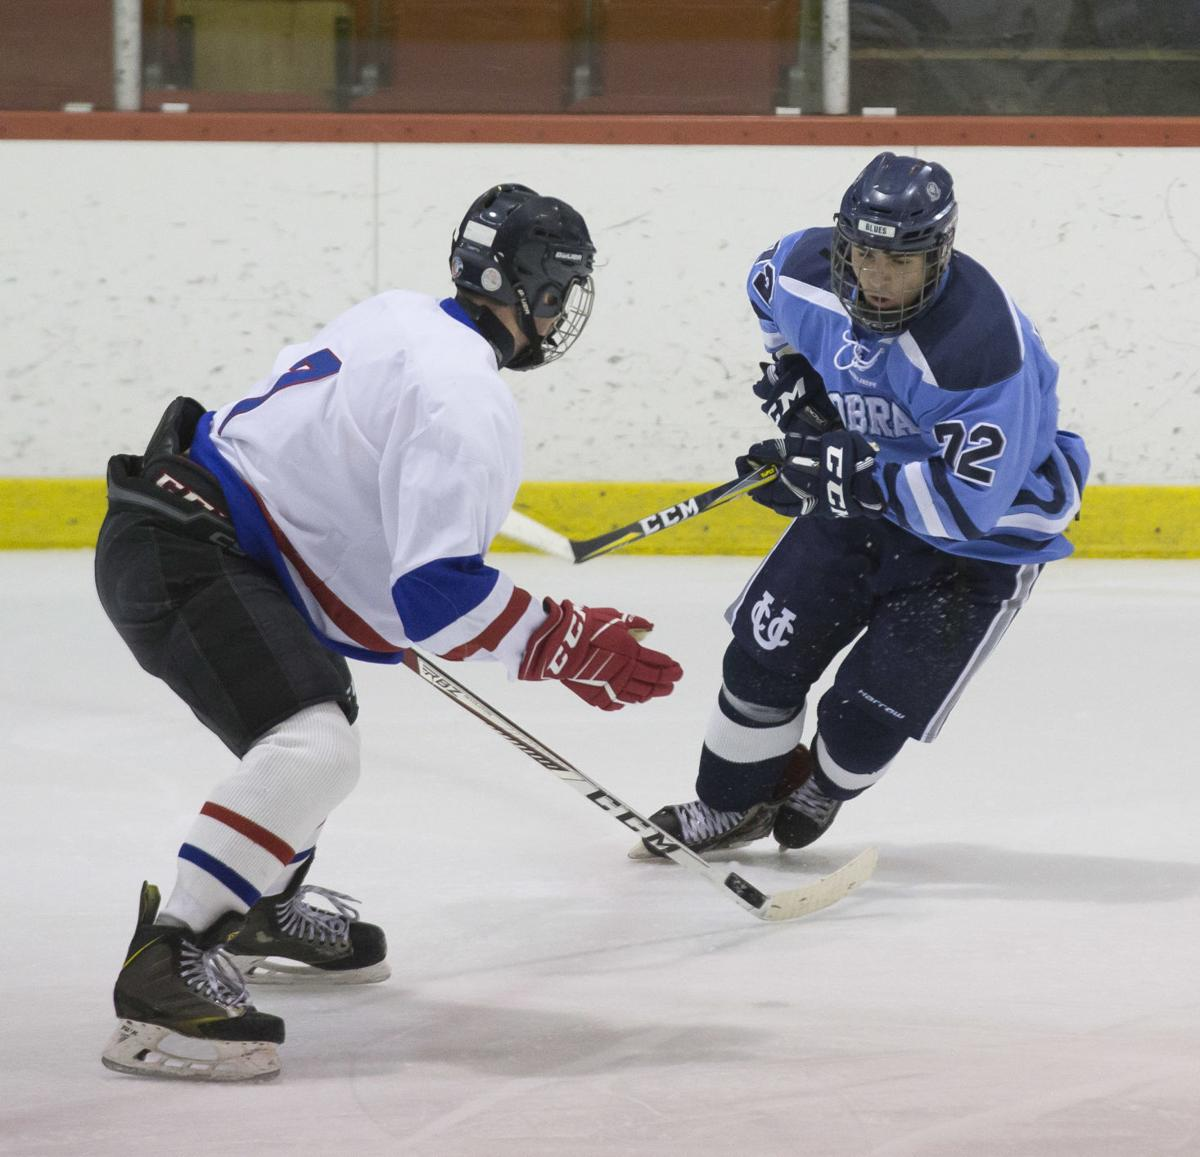 LaSalle downs short-handed Lakeshore squad 5-0